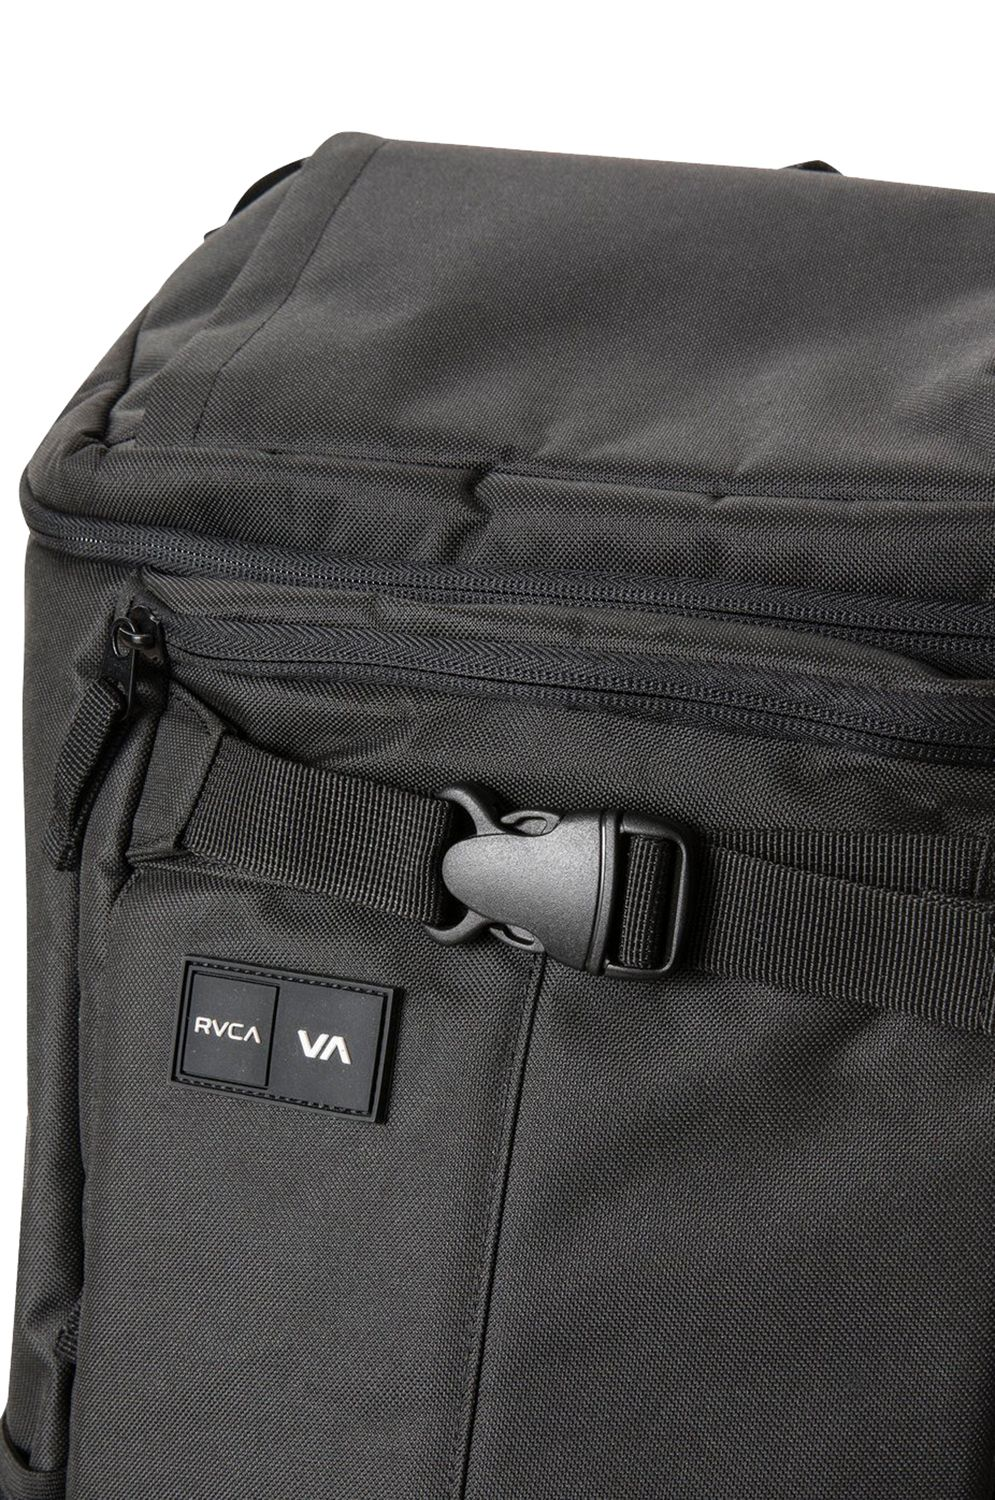 Mochila RVCA VOYAGE BACKPACK III Black